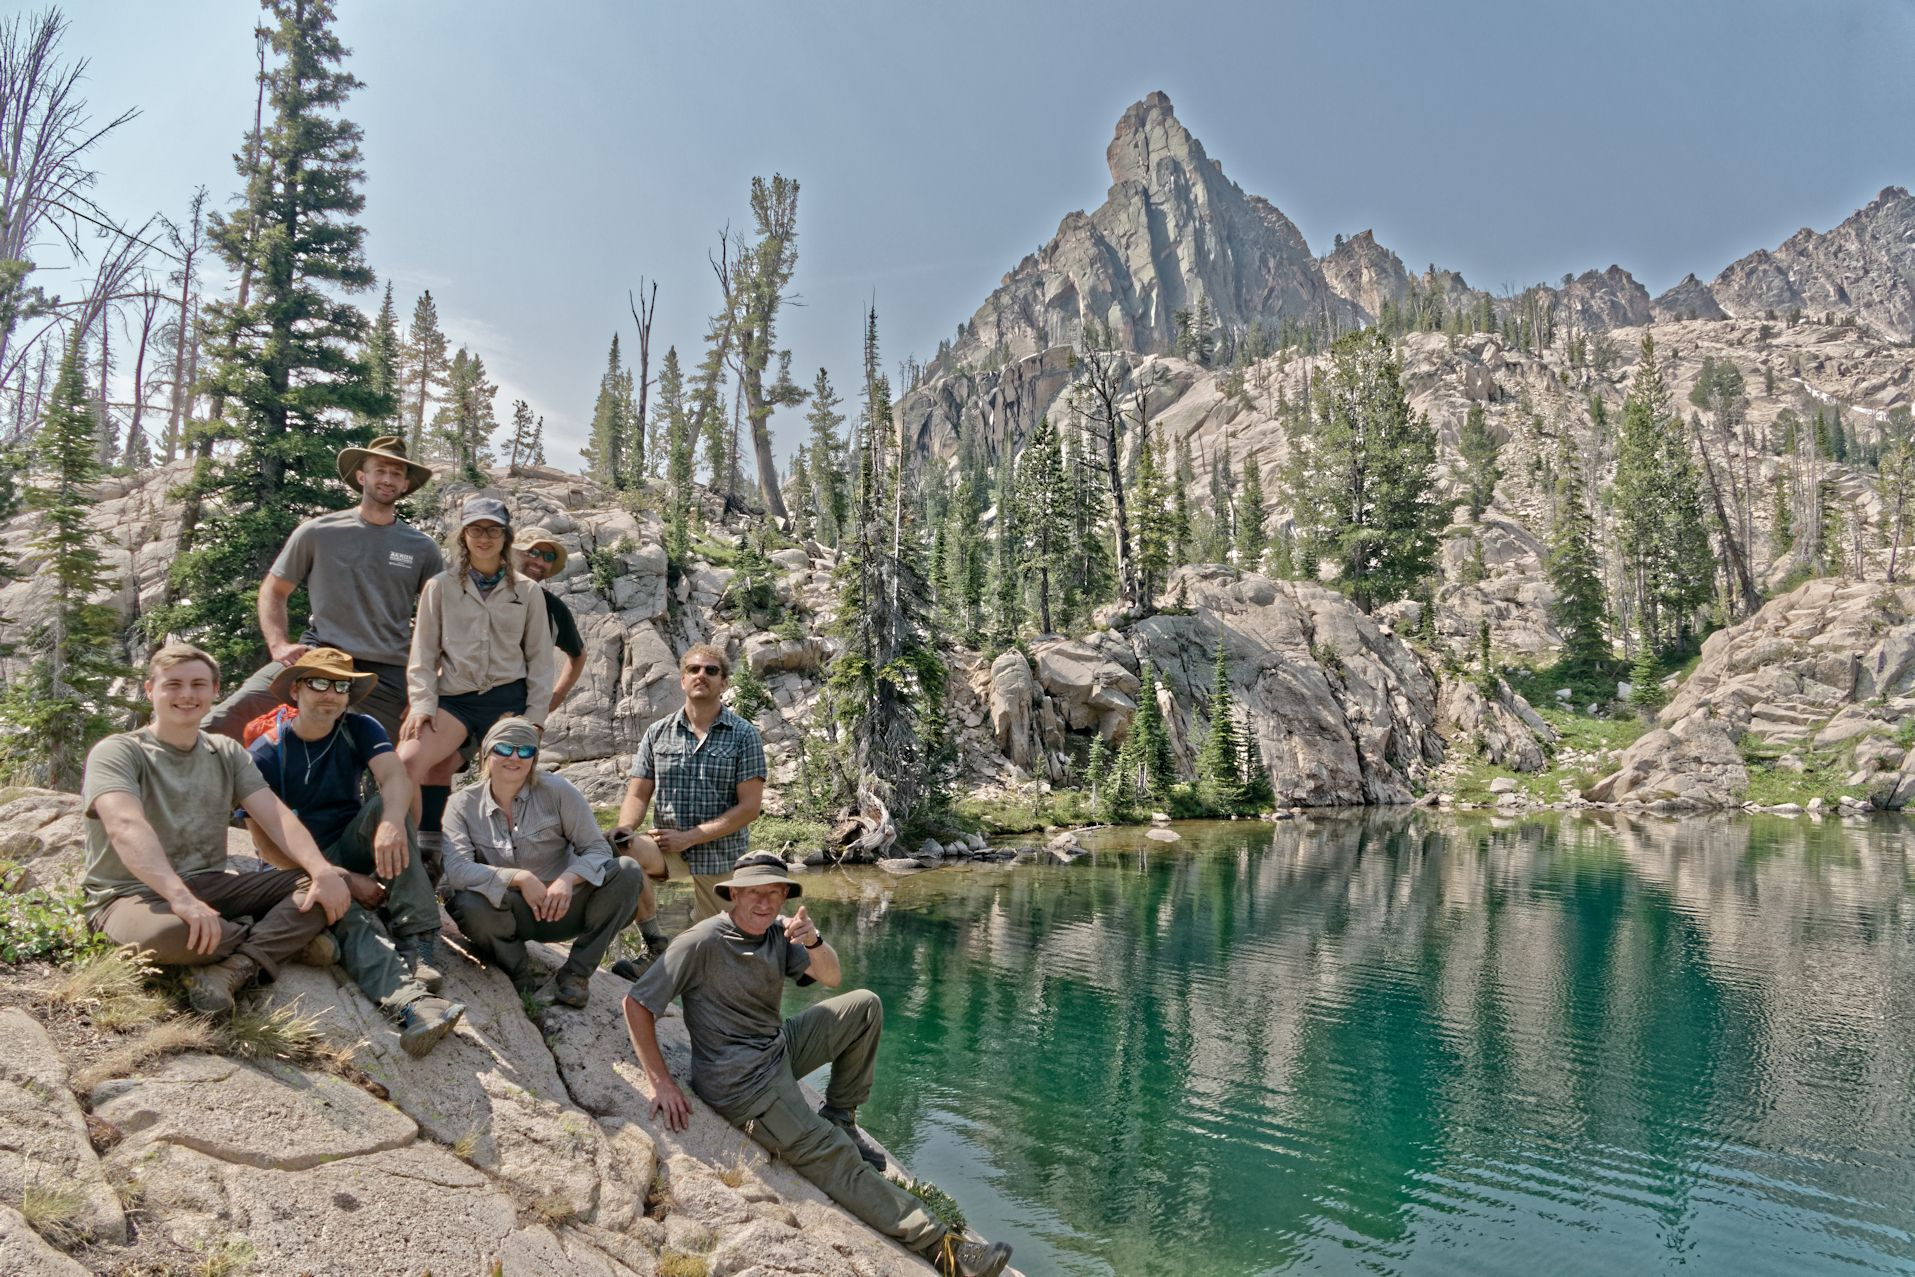 The Hopeless Wanderers - Backpacking Group